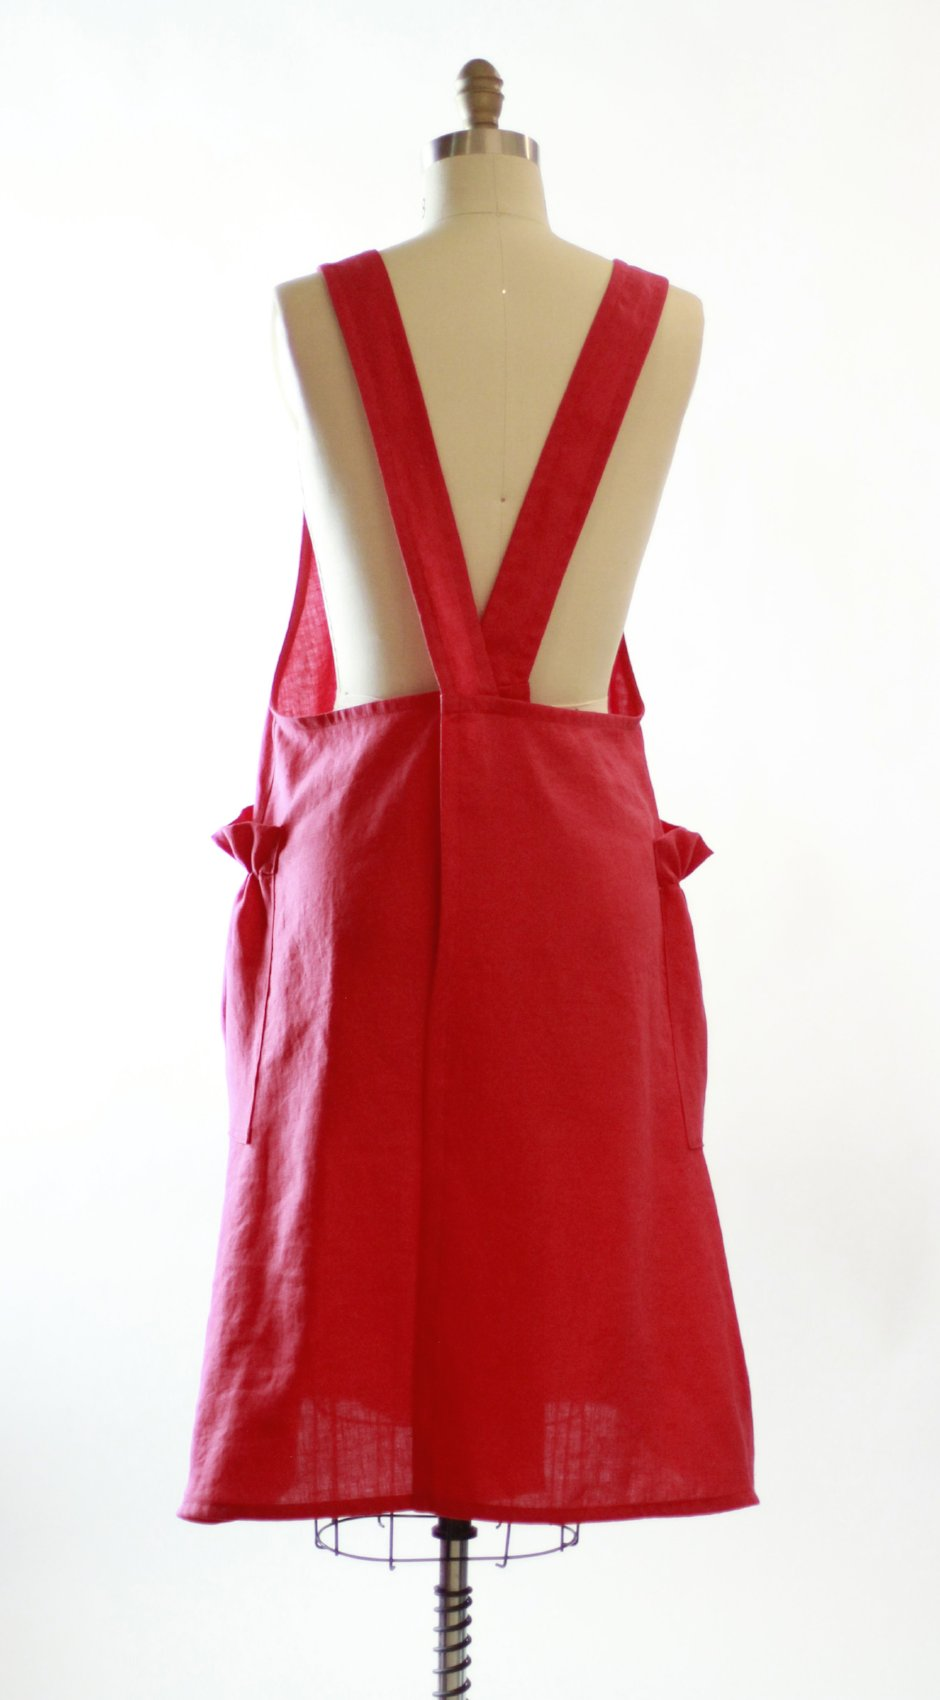 No Tie Crossback Apron in Red 100% Flax Linen XS-5X, back view